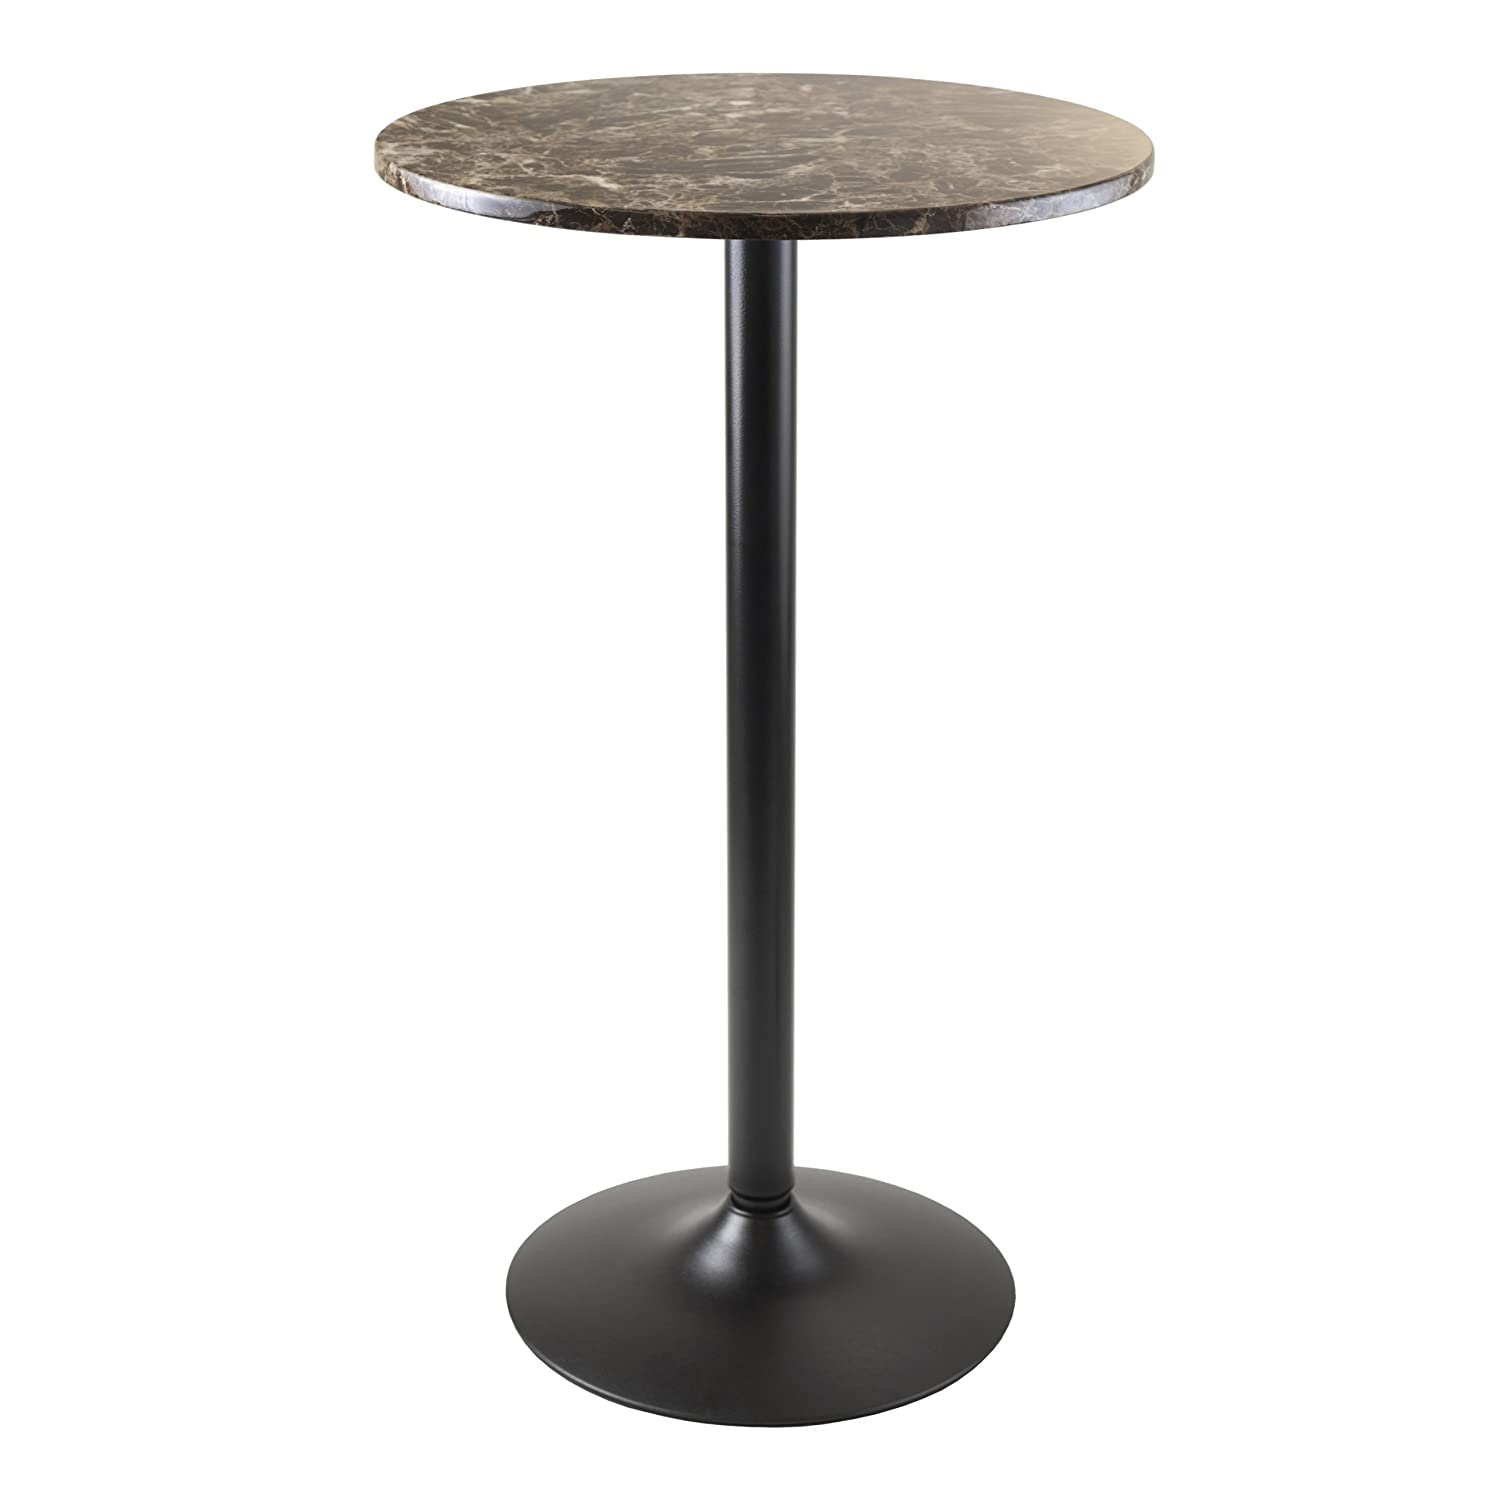 Winsome Wood Cora Round Bar Height Pub Table with Faux Marble Top, Black Base